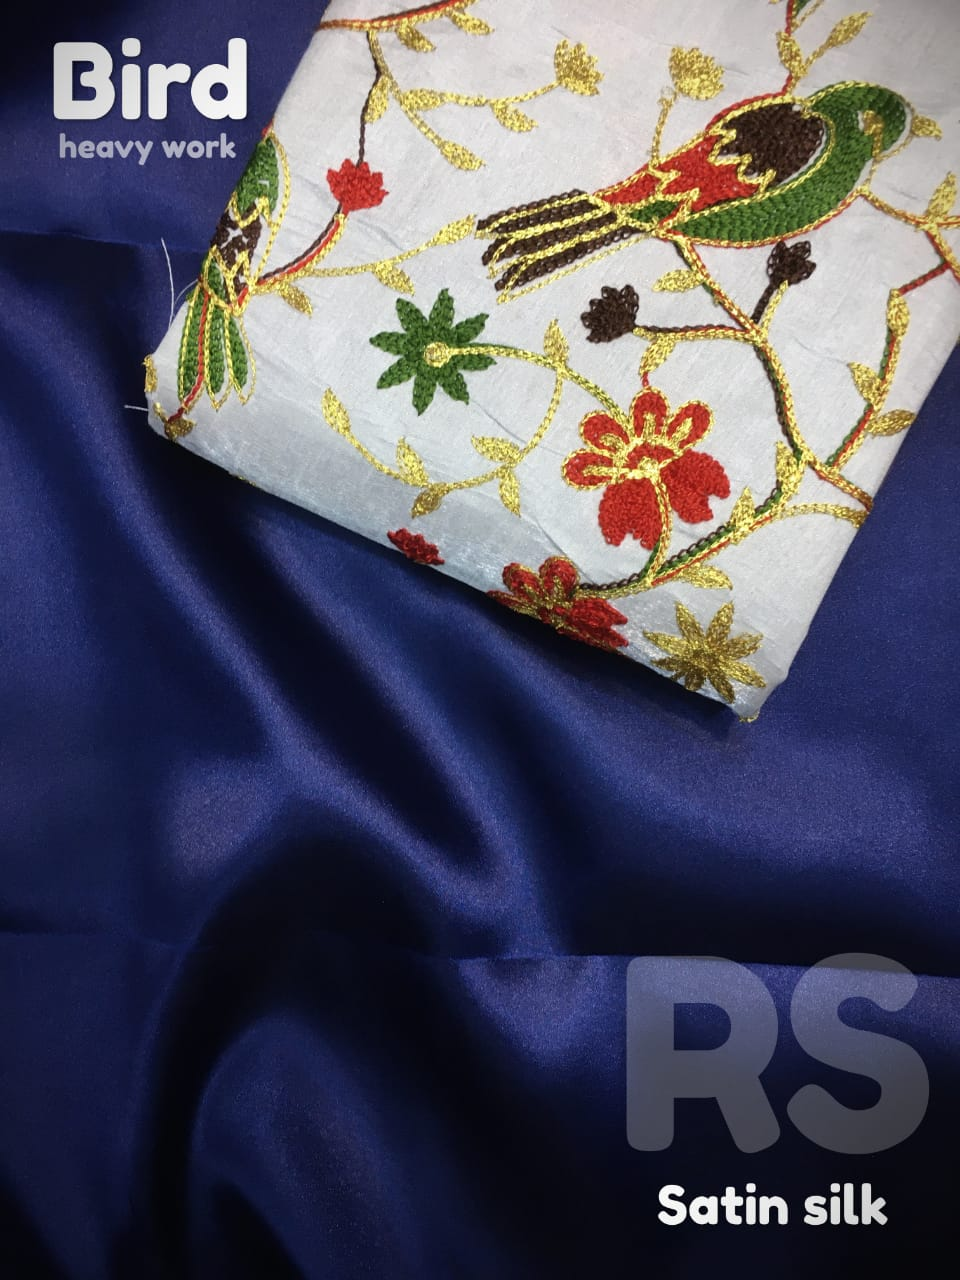 Rs Satin Pure Satin Silk Bird Heavy Work Embroidery Saree Collection